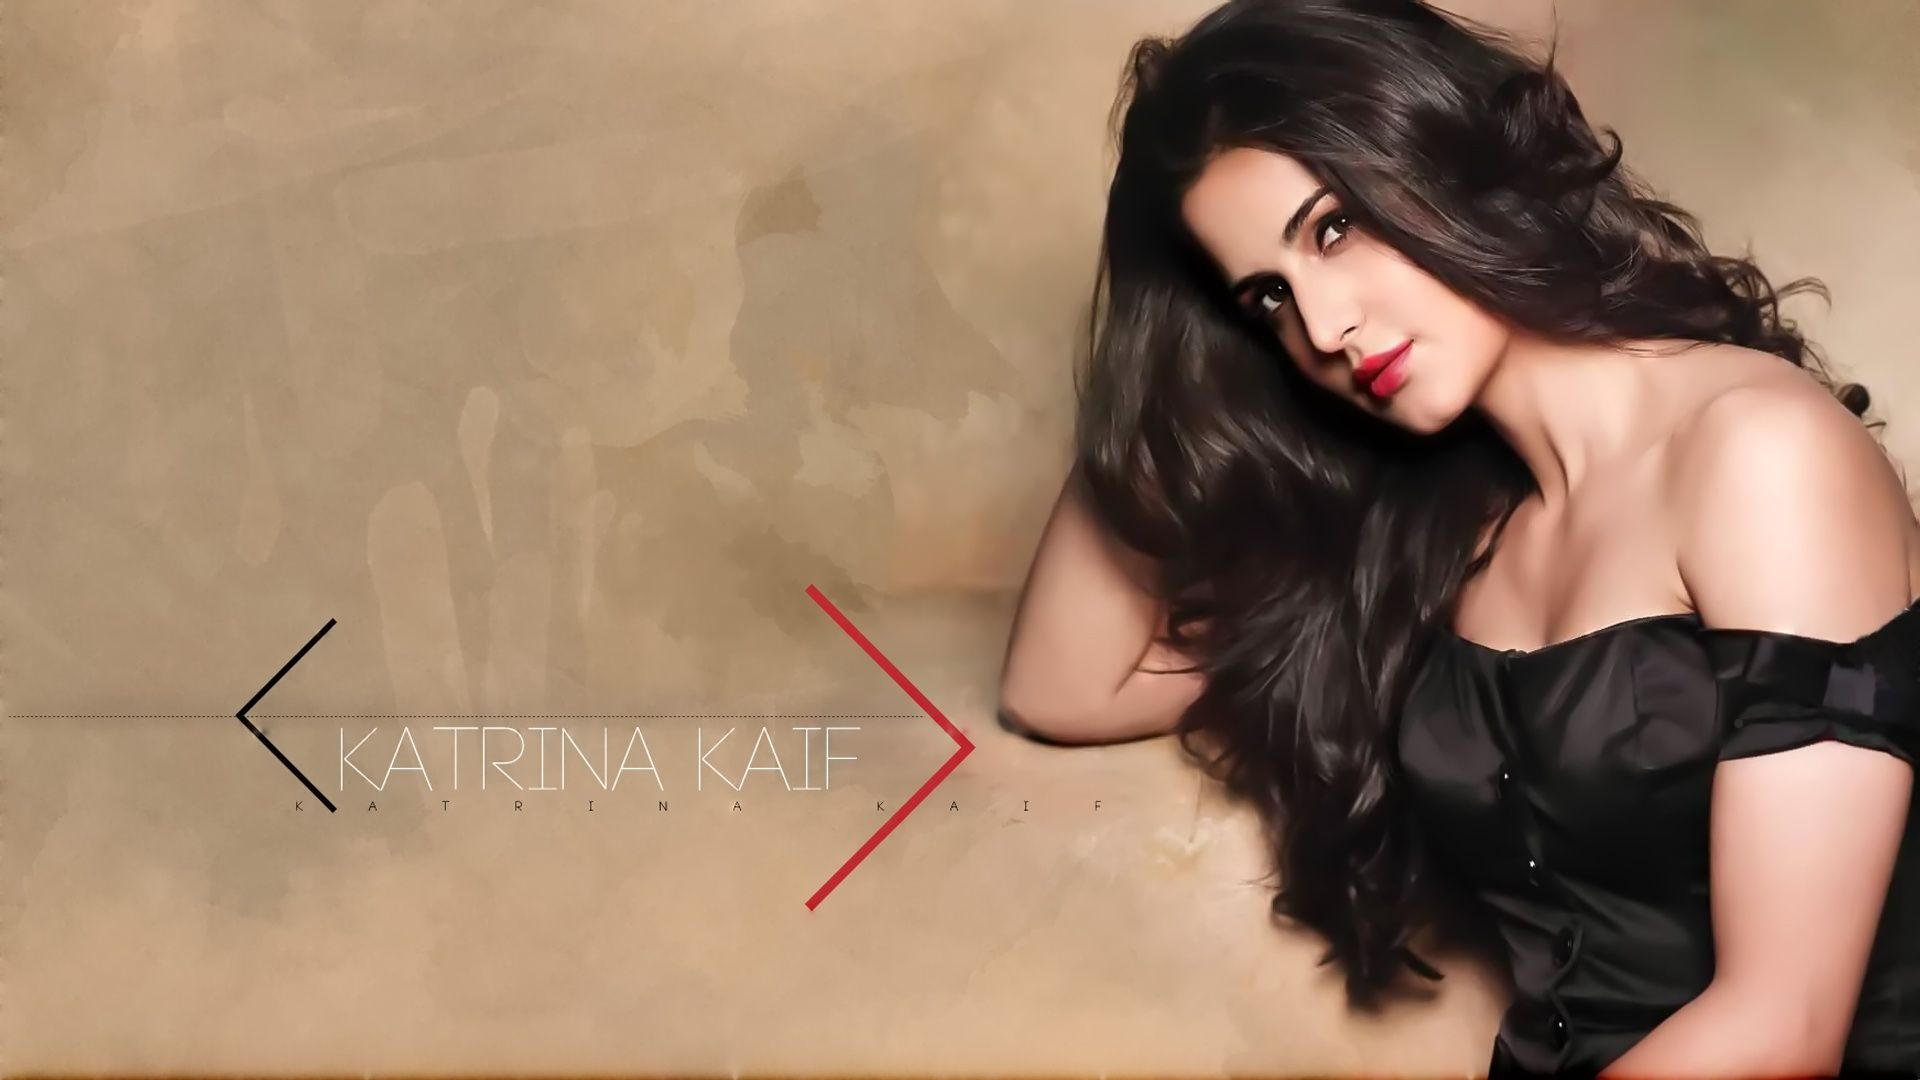 Katrina kaif sexey video